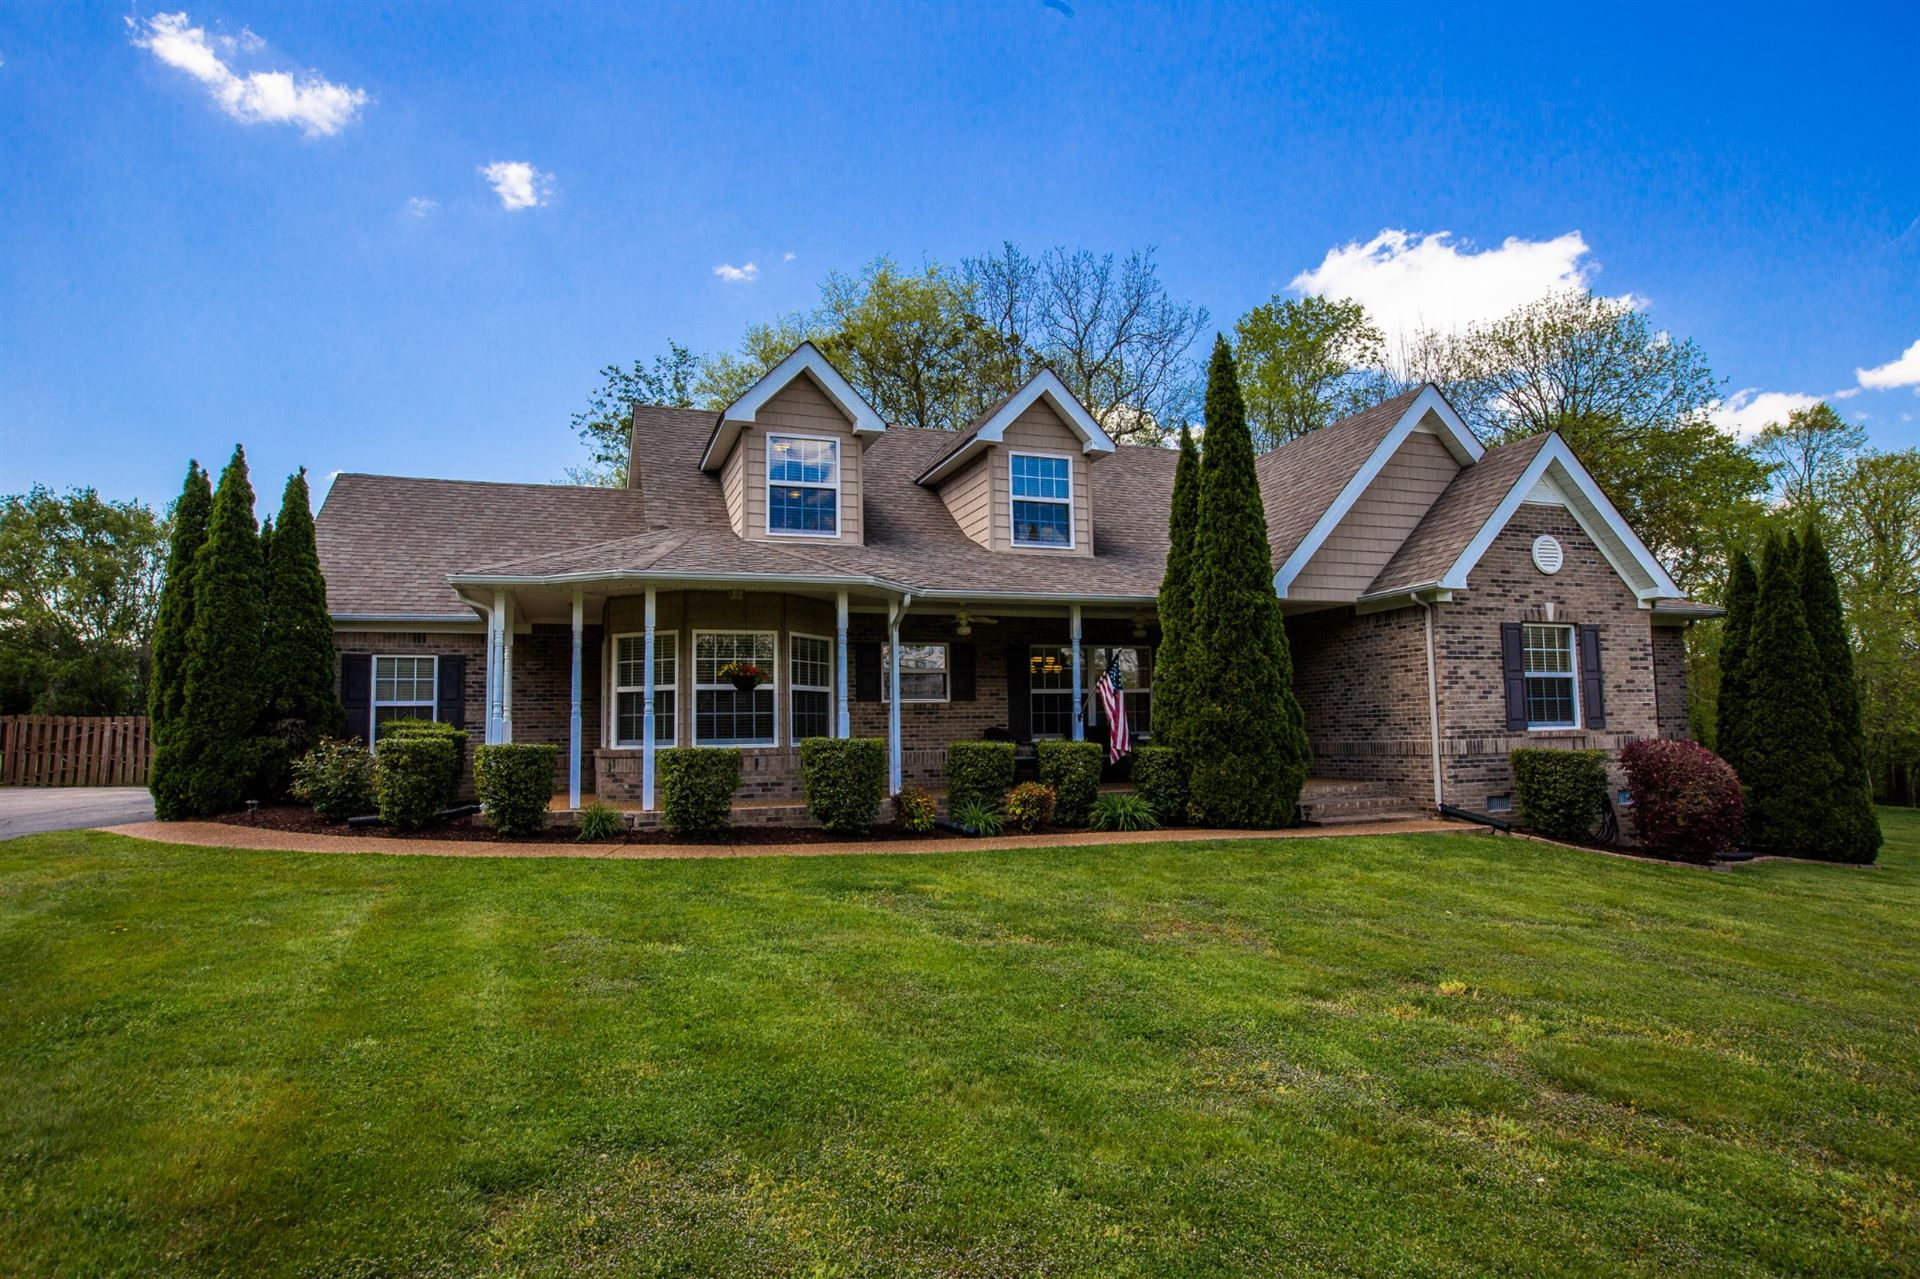 Photo of 1808 Holden Ct, Spring Hill, TN 37174 (MLS # 2243271)